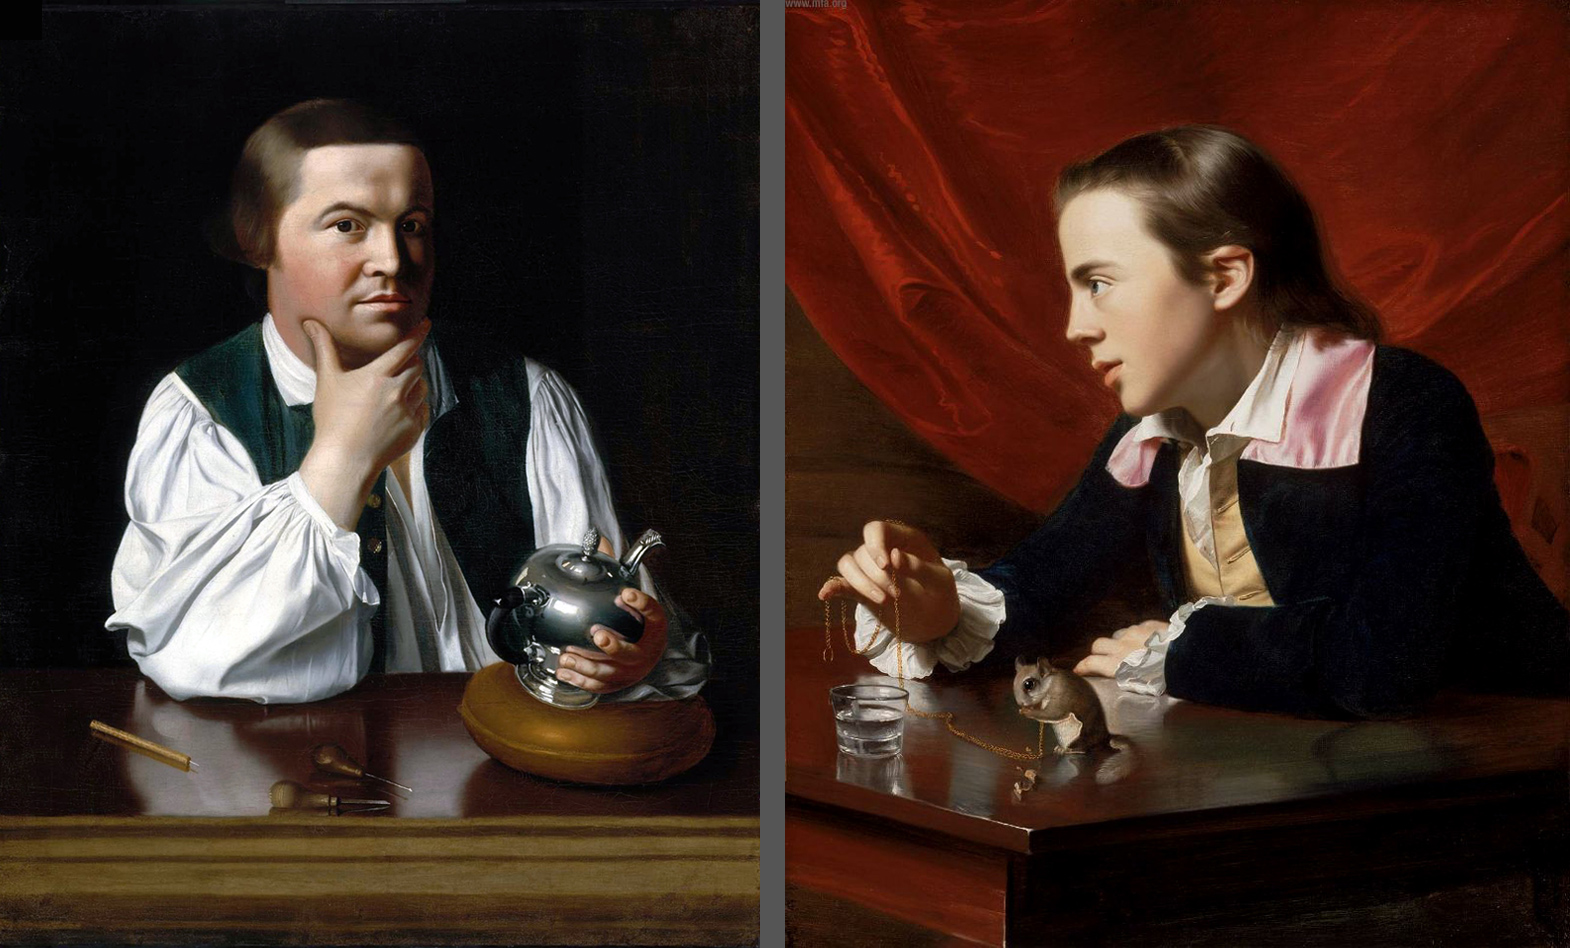 From left:John Singleton Copley, Paul Revere. Oil on canvas, 1768. Museum of Fine Arts, Boston. 30.781John Singleton Copley, A Boy with a Flying Squirrel (Henry Pelham). Oil on canvas, 1765. Museum of Fine Arts, Boston. 1978.297